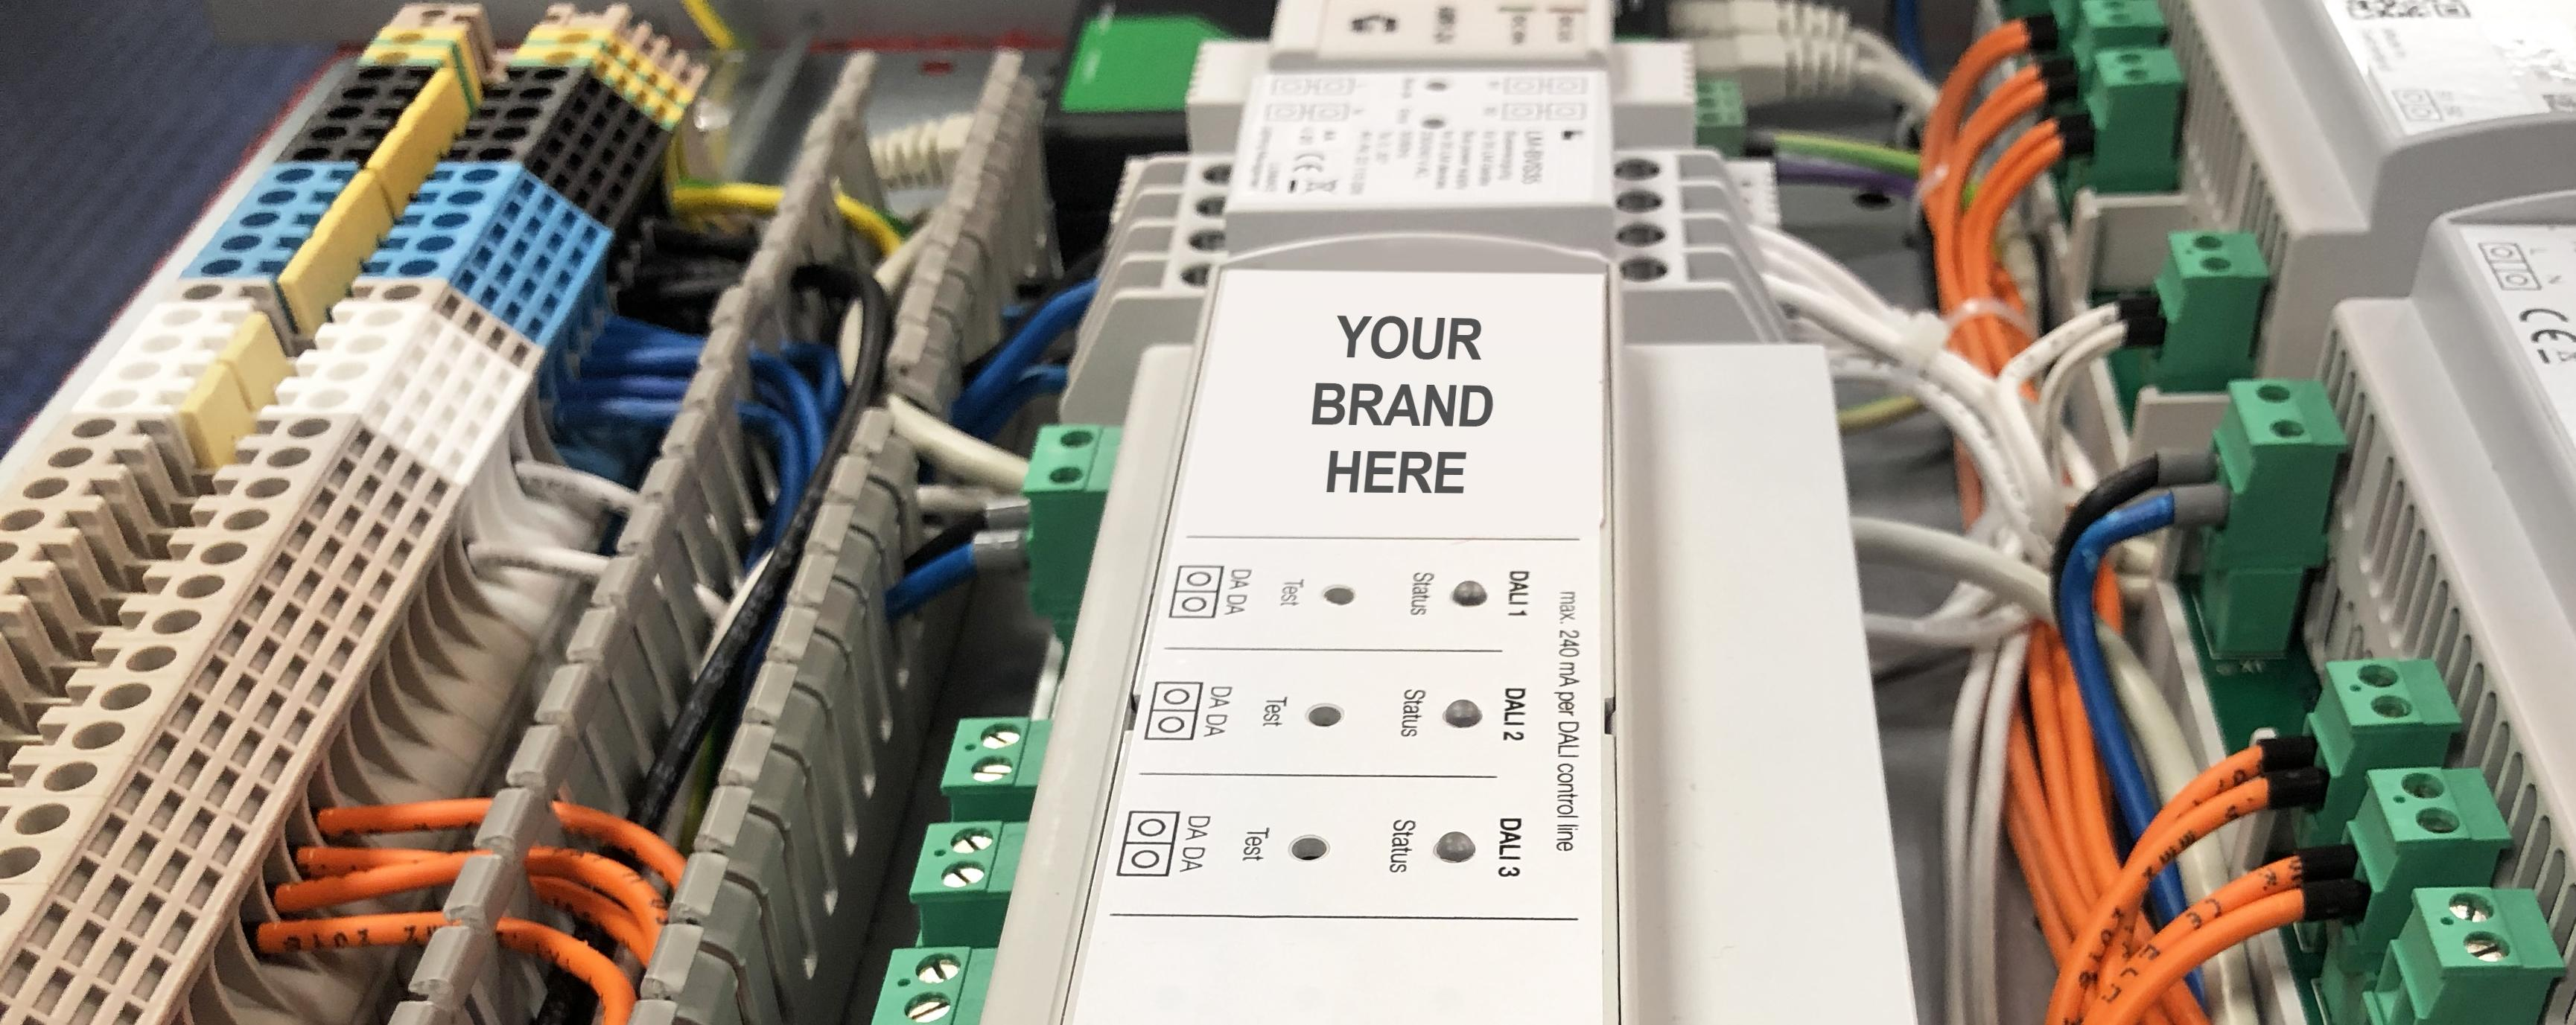 Branded control panels